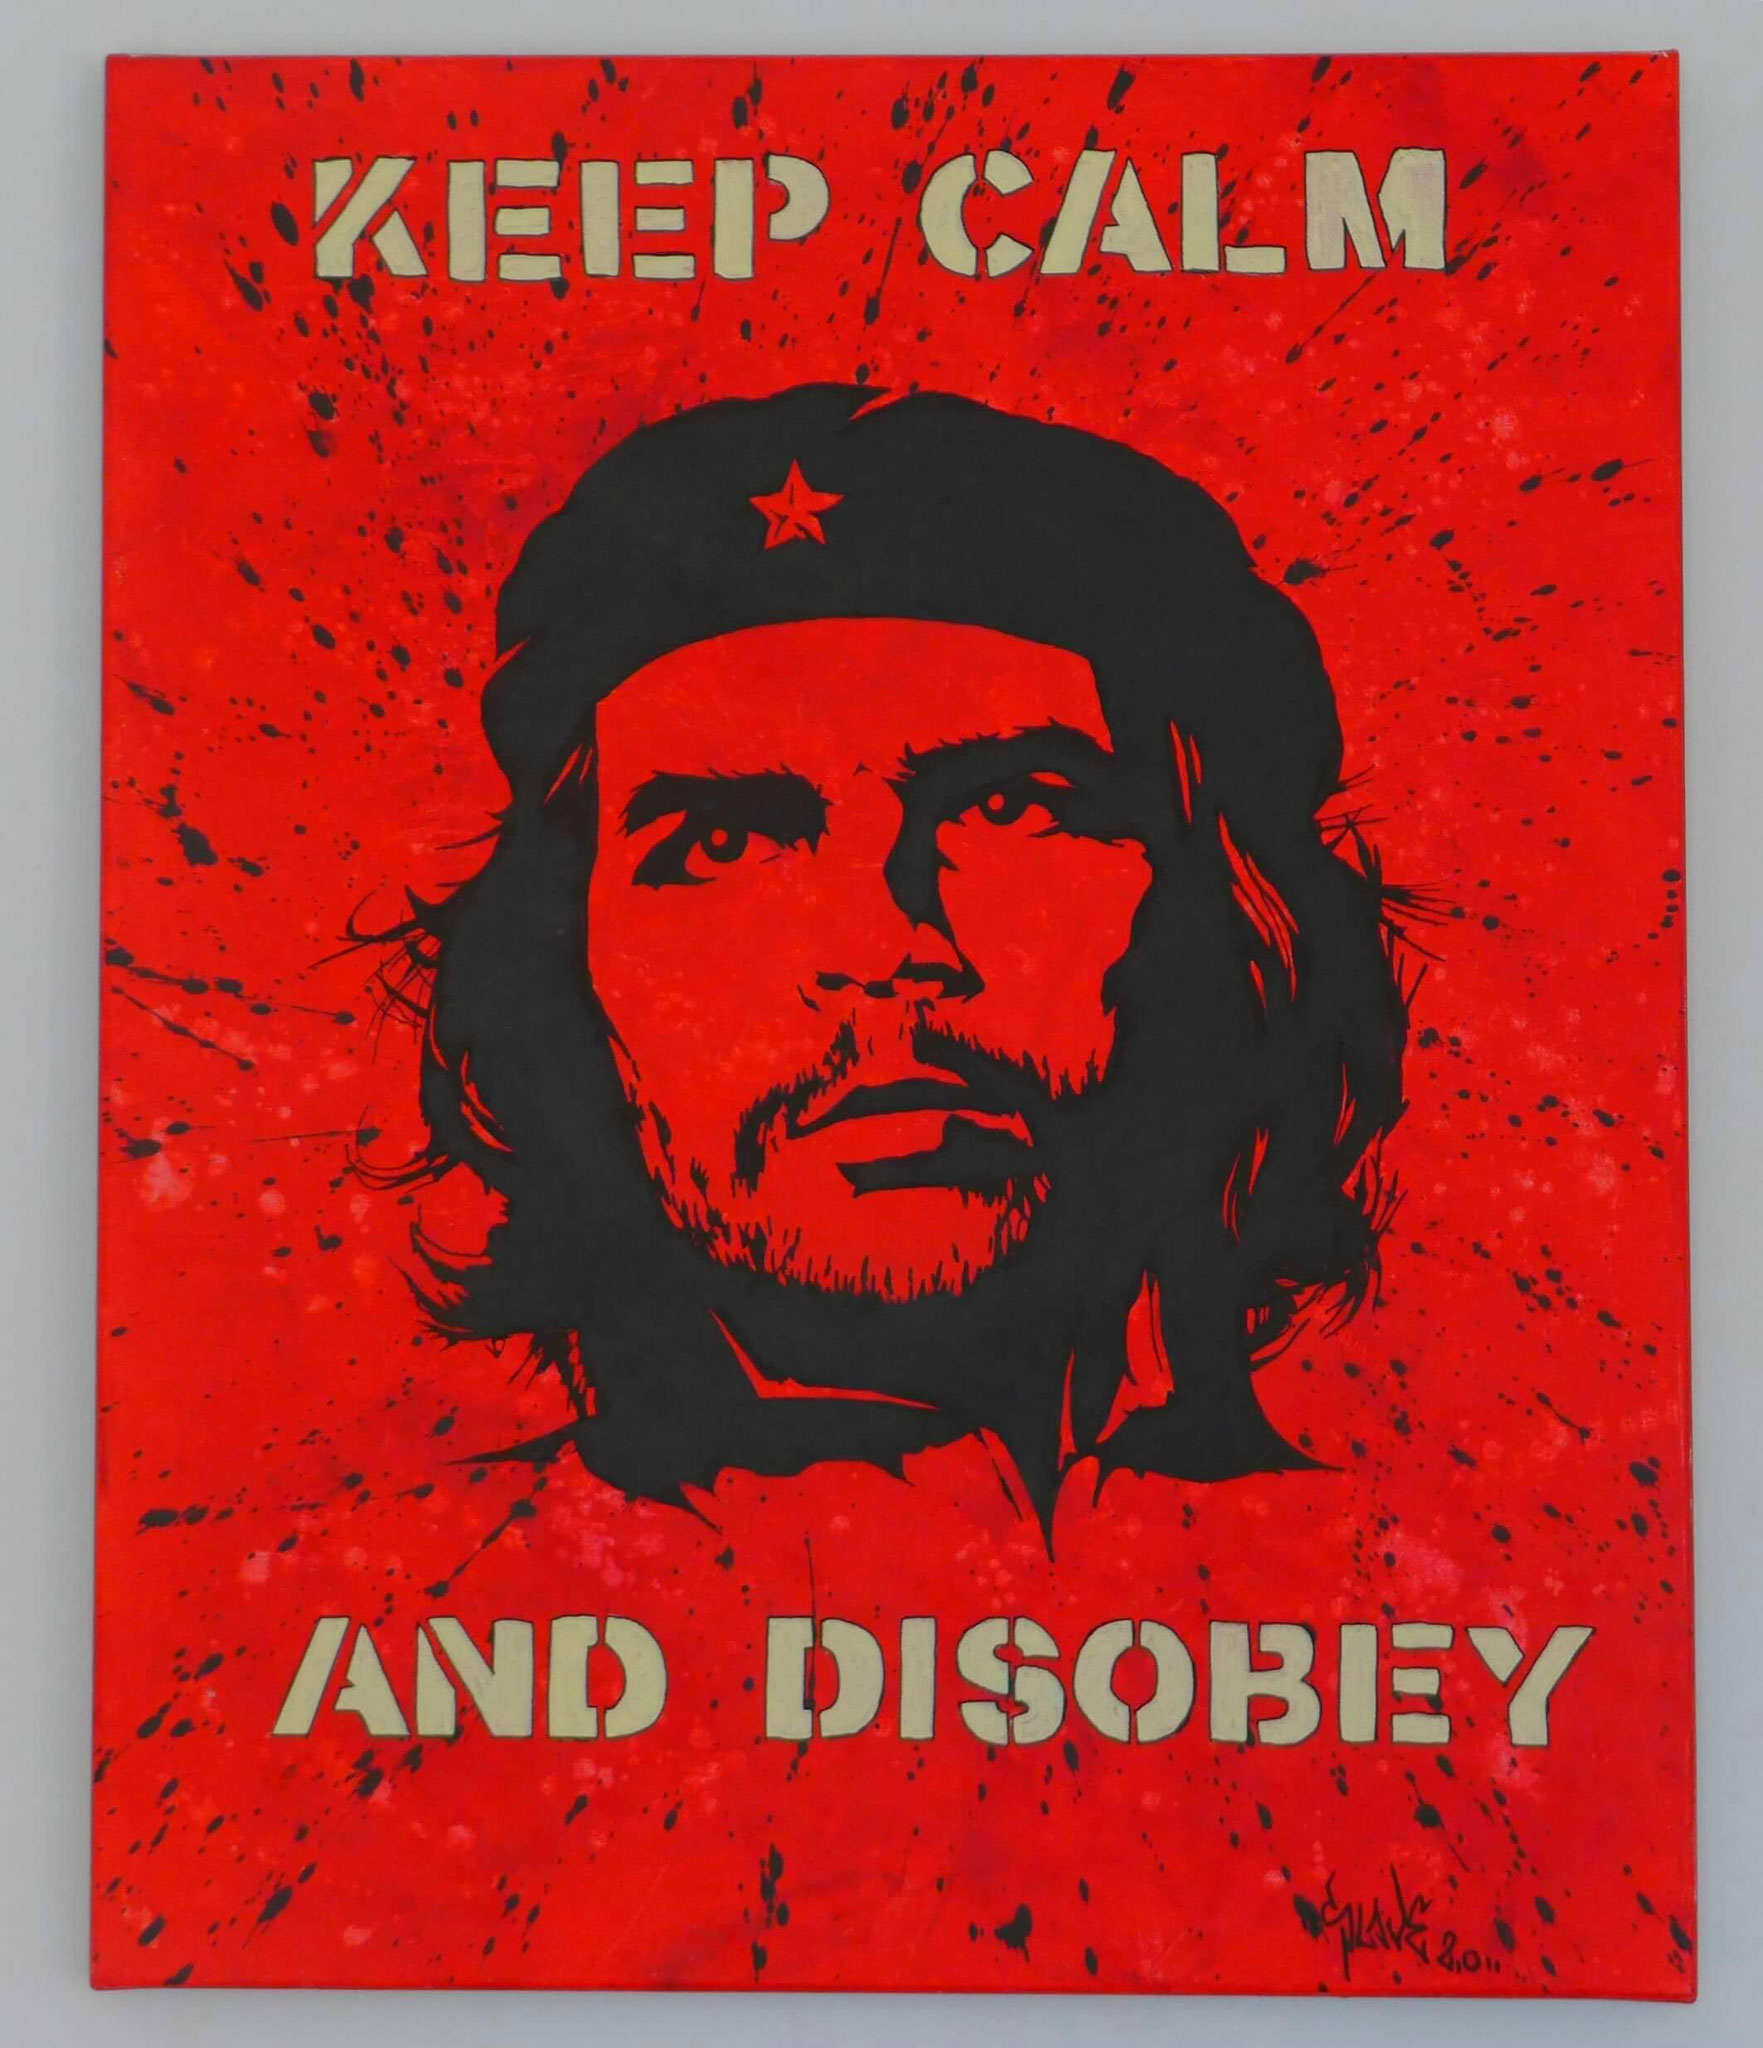 achat tableau che guevara - Keep calm and disobey - Slave 2.0